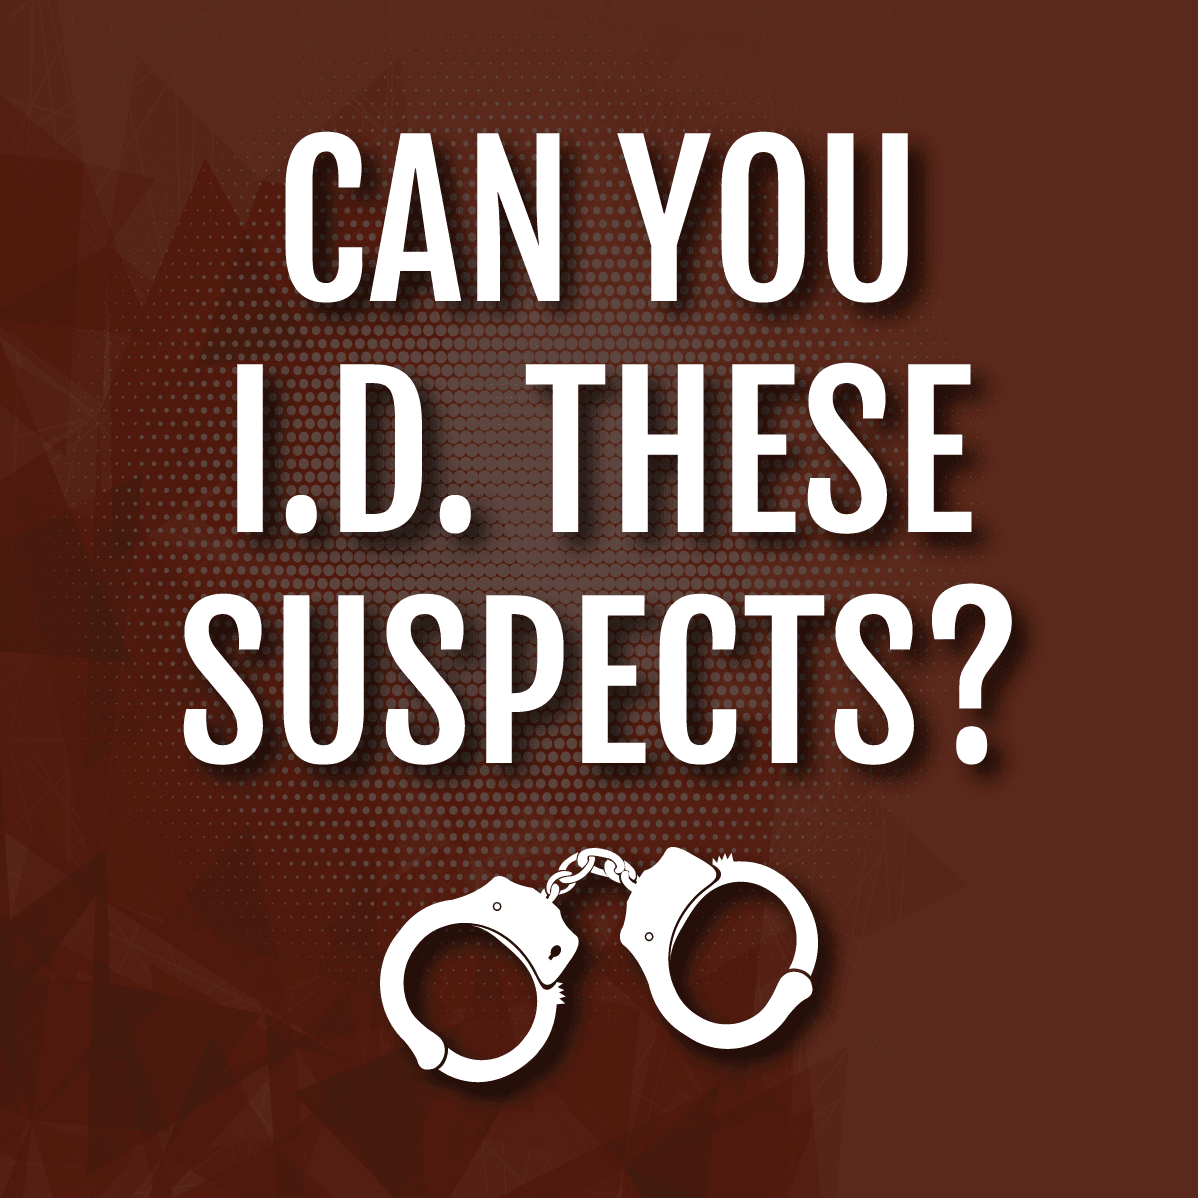 """Can you ID these suspects?"" with handcuffs below the wording."